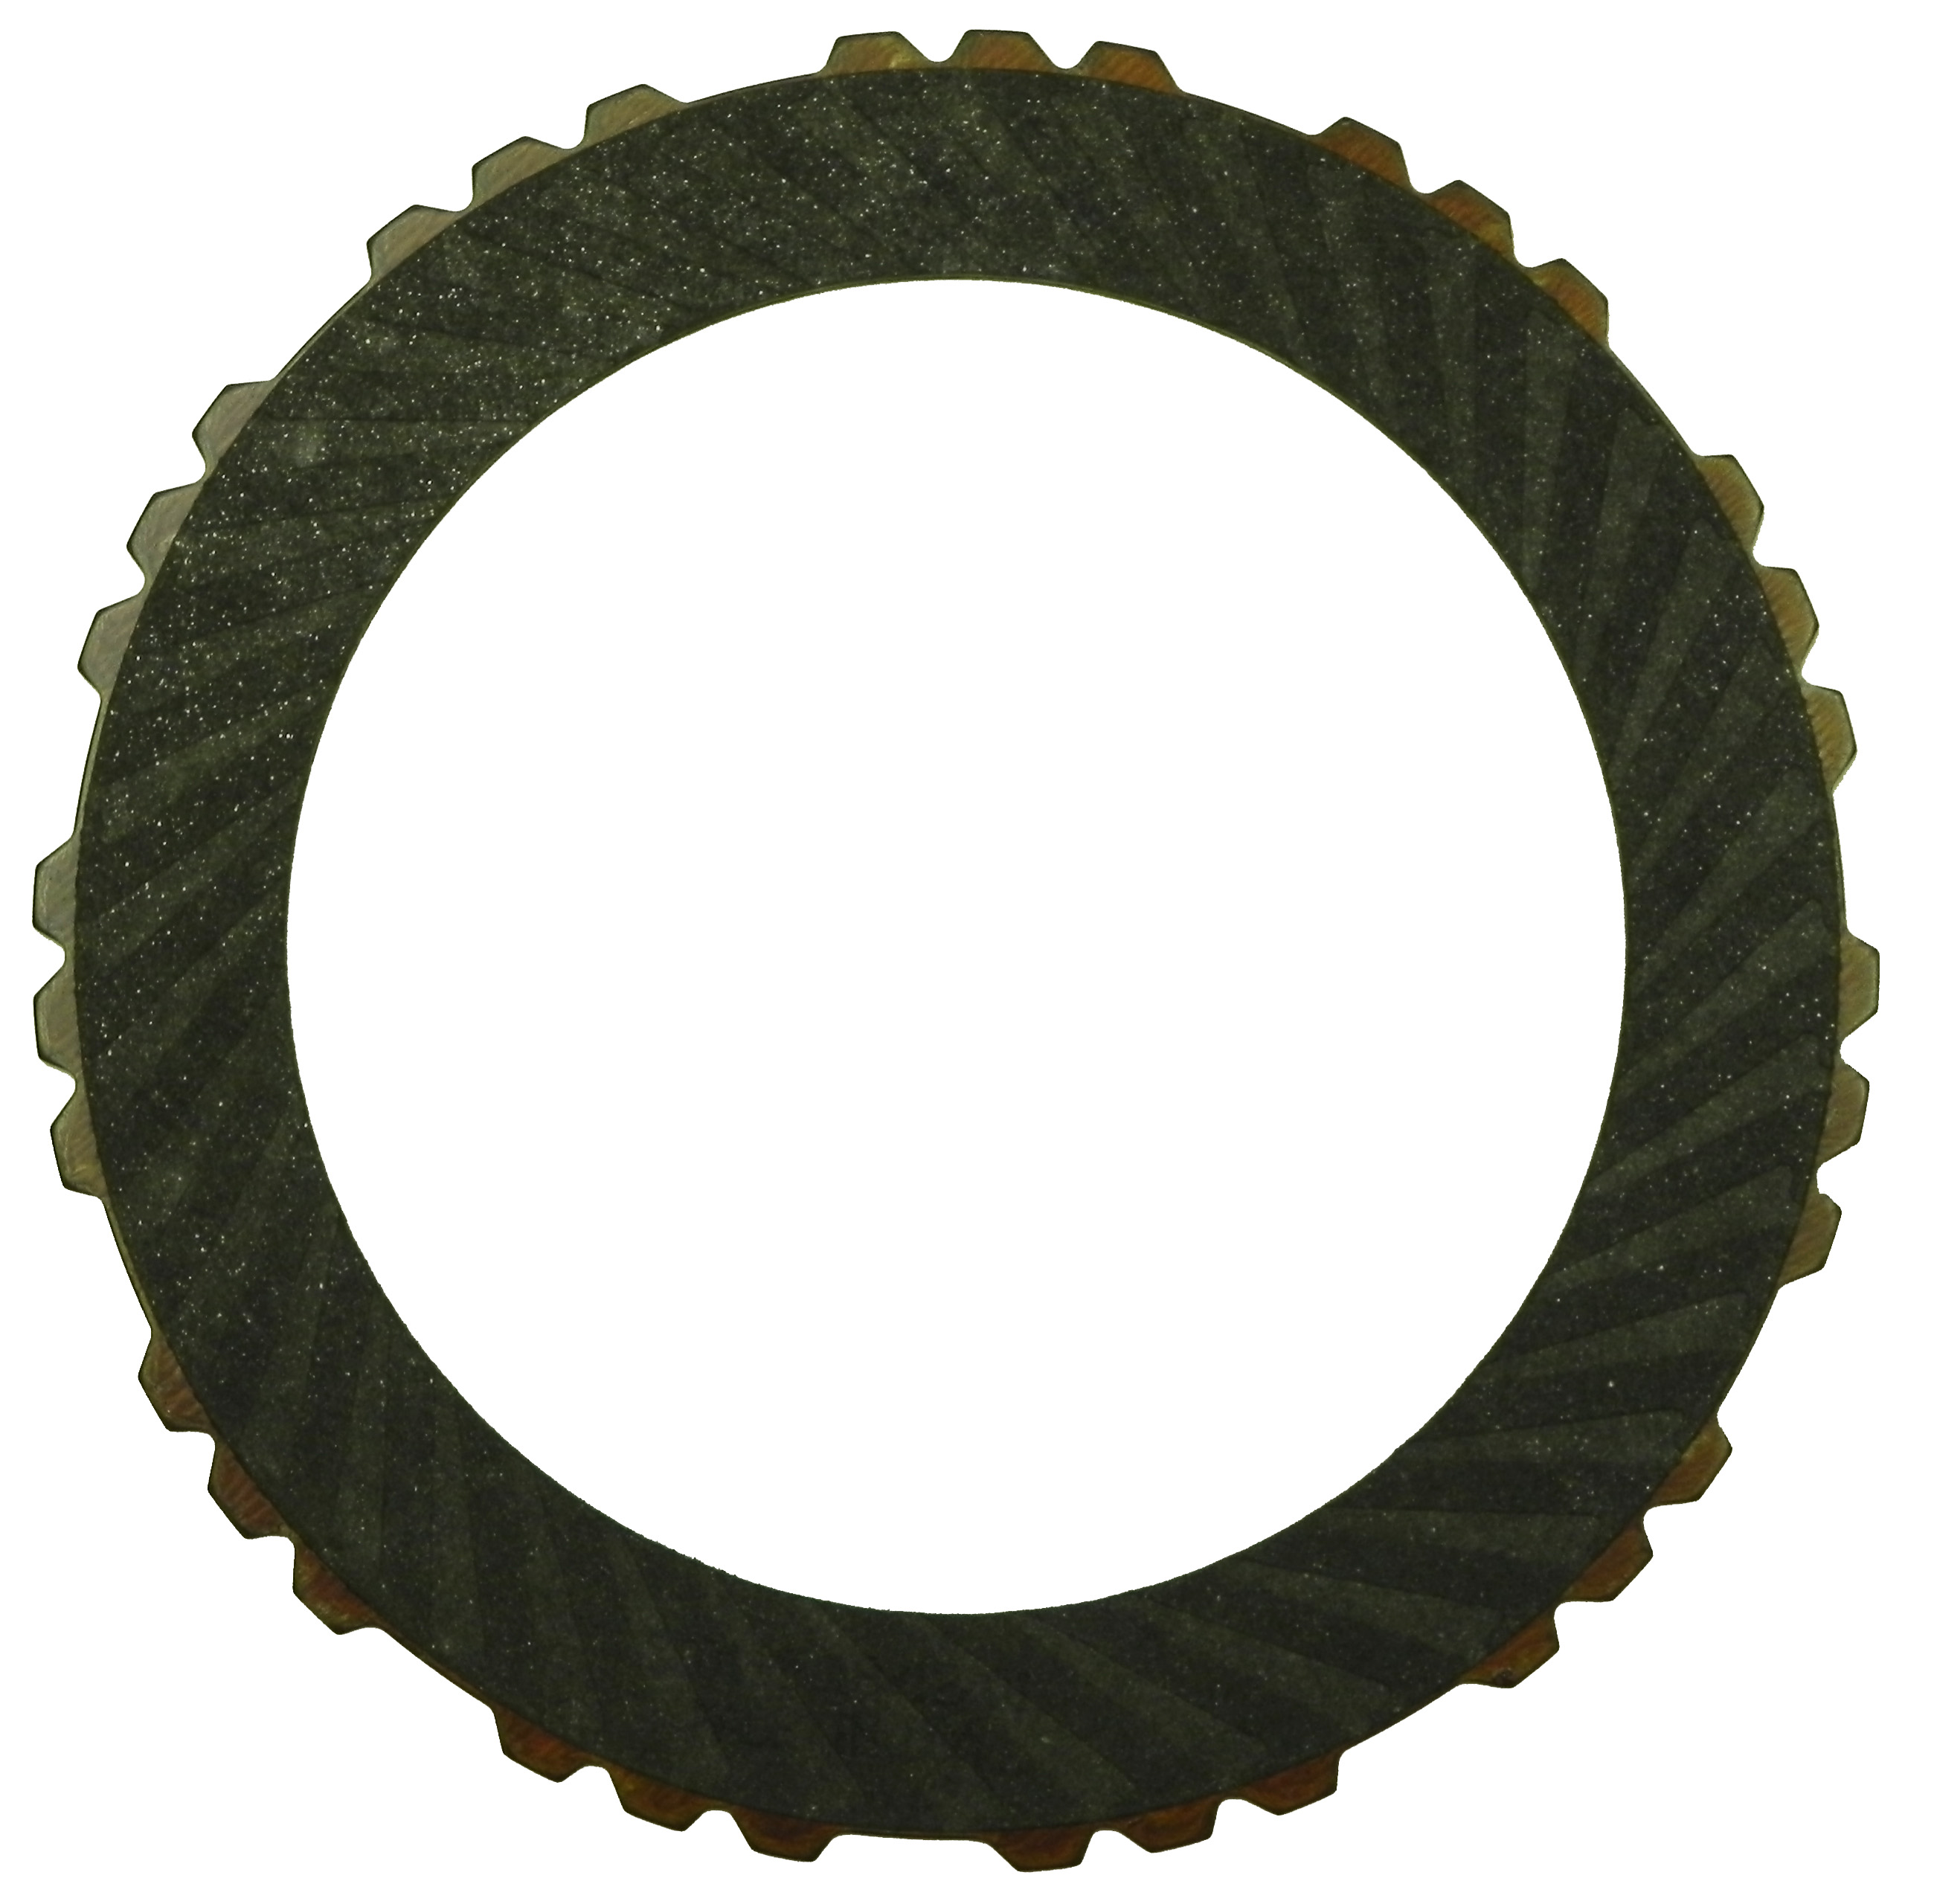 R560115 | 1999-ON Friction Clutch Plate High Energy Intermediate External Spline, 5R55N Only, Single Sided High Energy